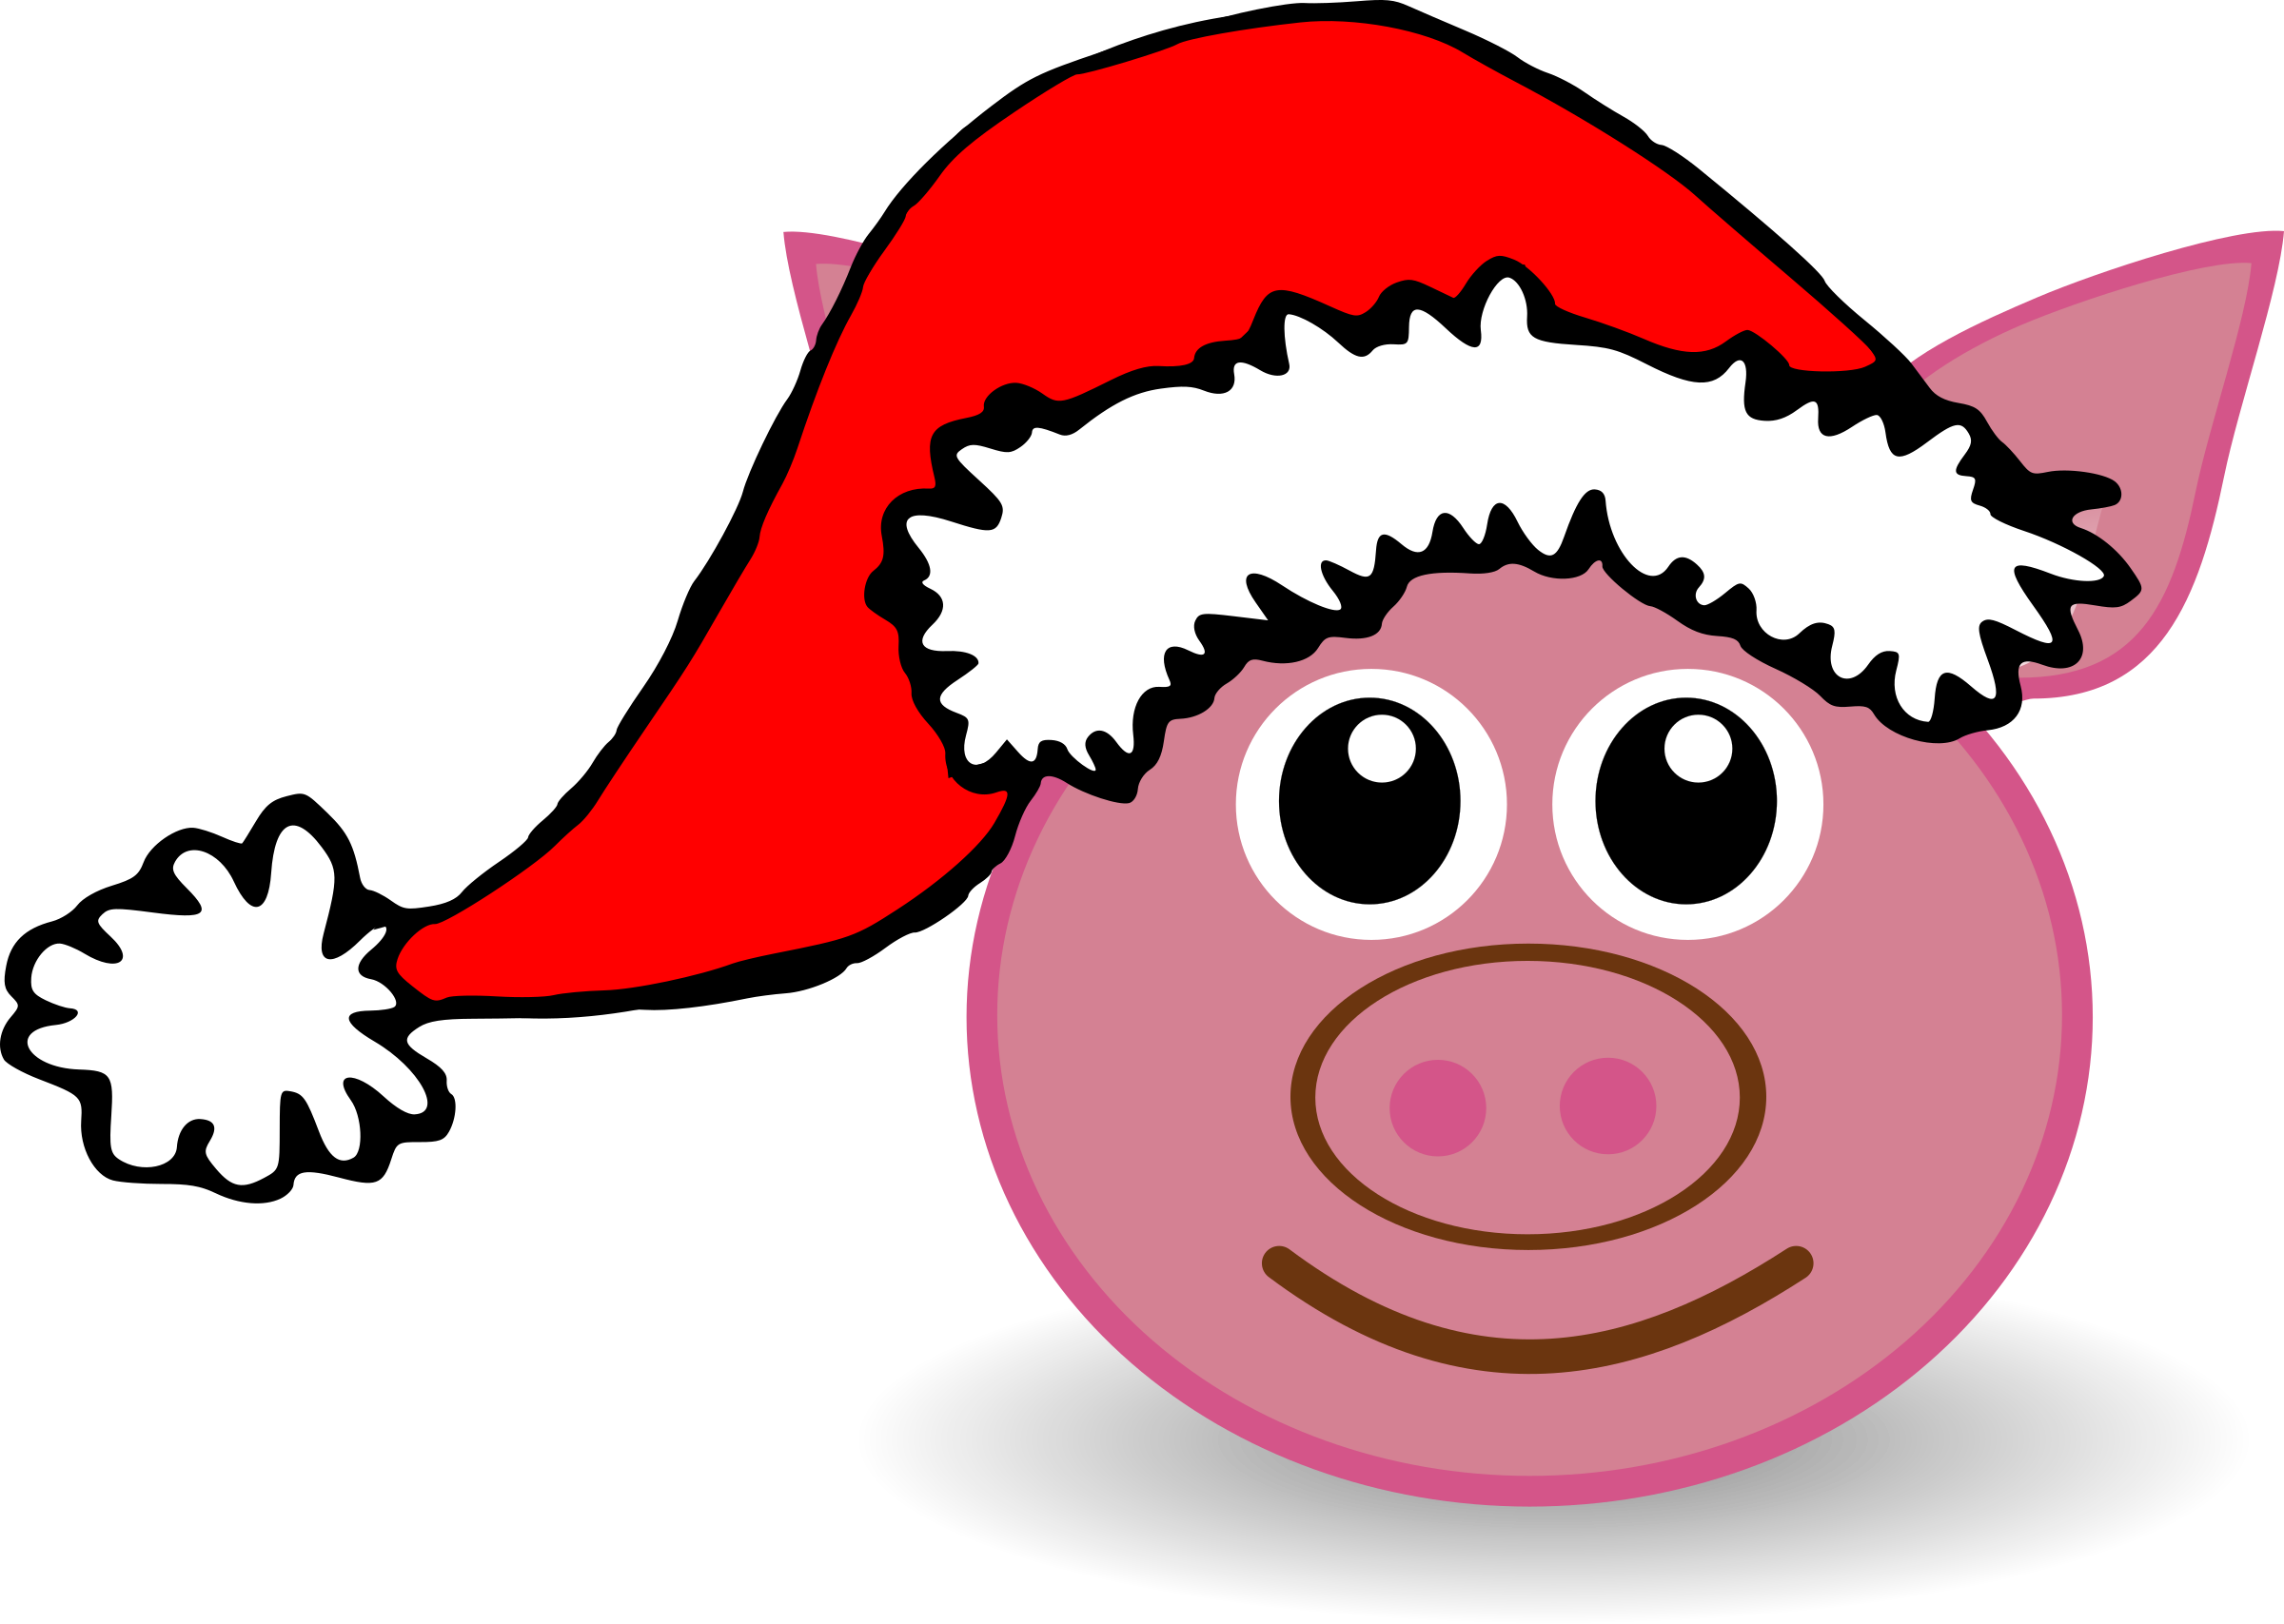 Funny piggy face with Santa Claus hat by palomaironique